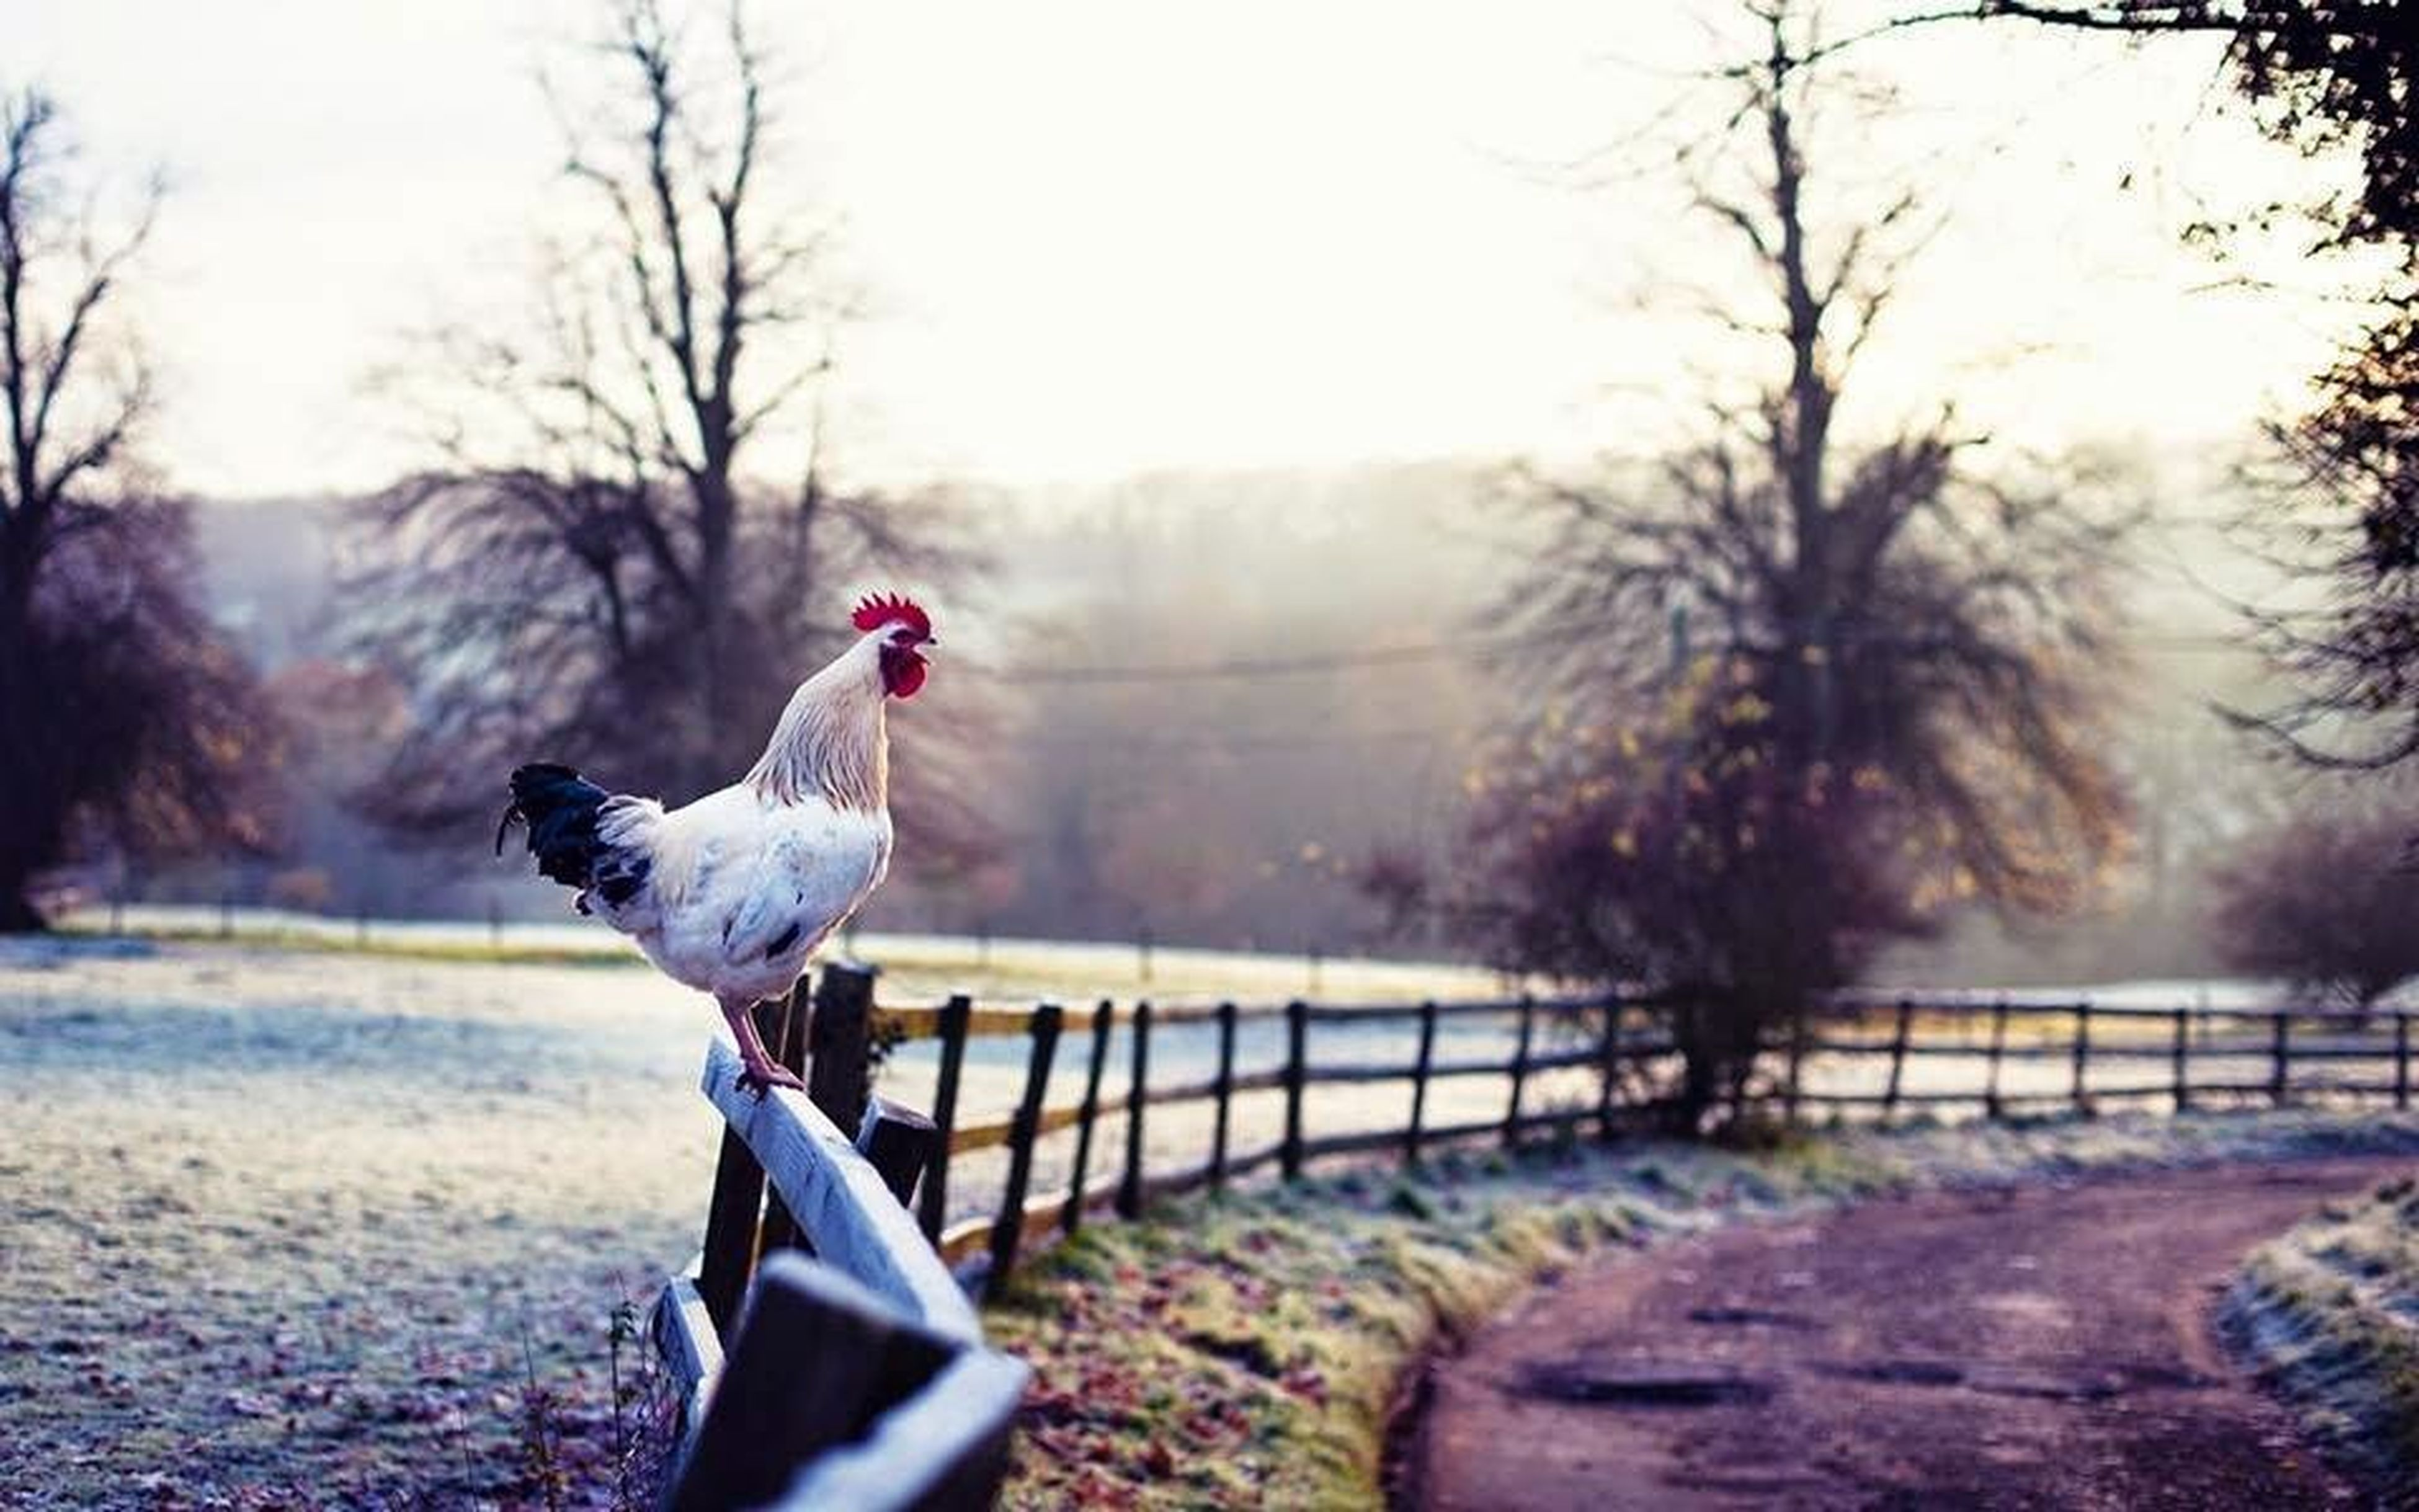 one animal, bird, tree, perching, animals in the wild, full length, day, rural scene, snow covered, tranquility, zoology, nature, focus on foreground, non-urban scene, solitude, tranquil scene, remote